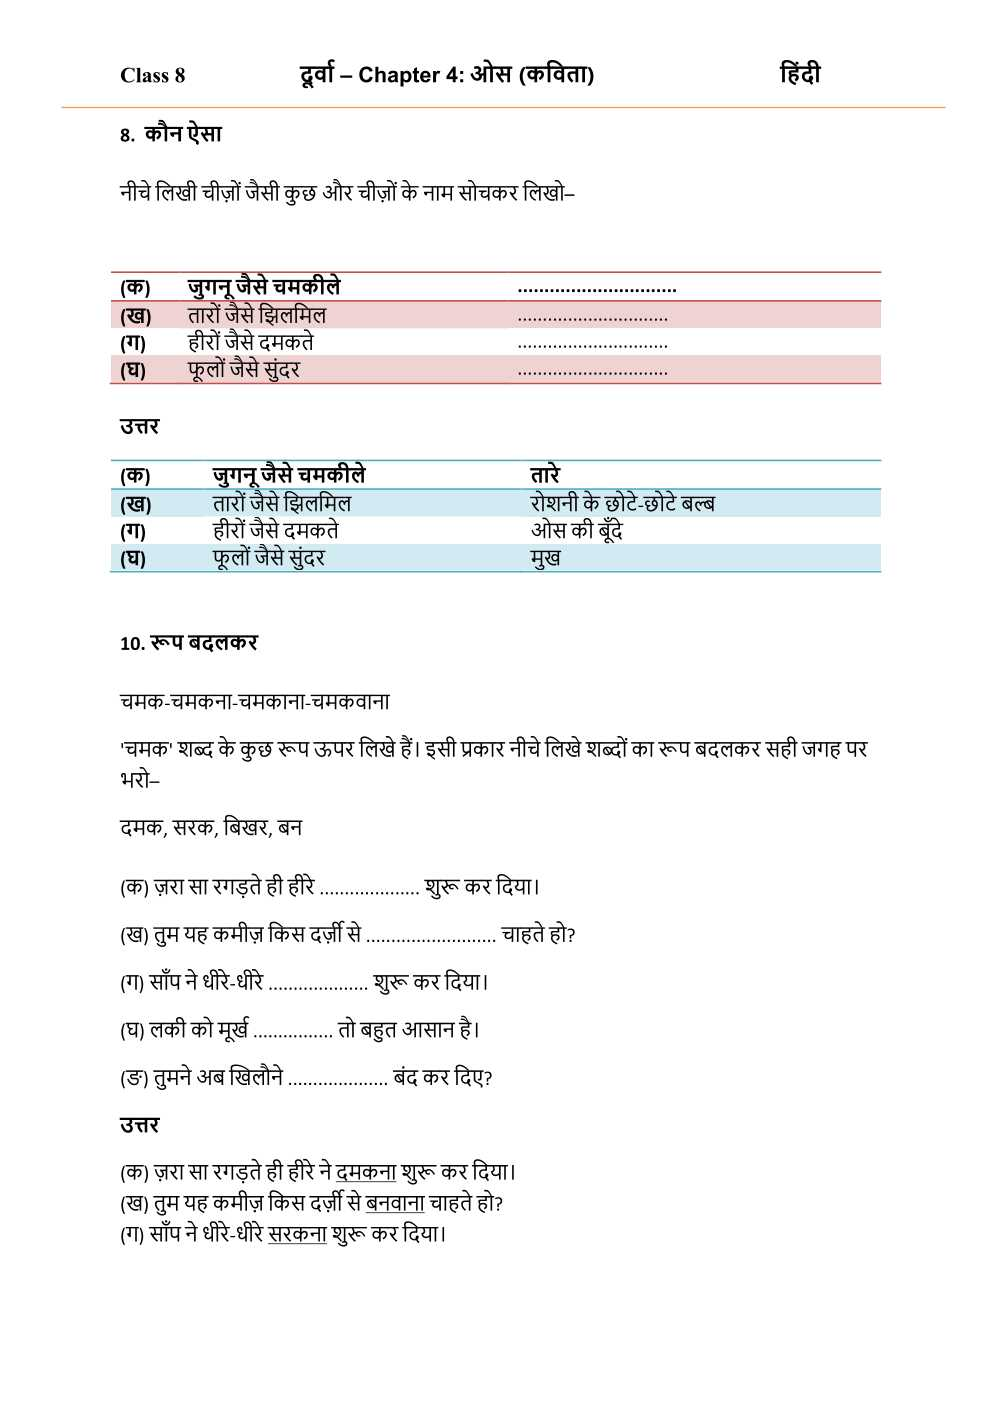 NCERT Solutions For Class 8 Hindi Durva Chapter 4